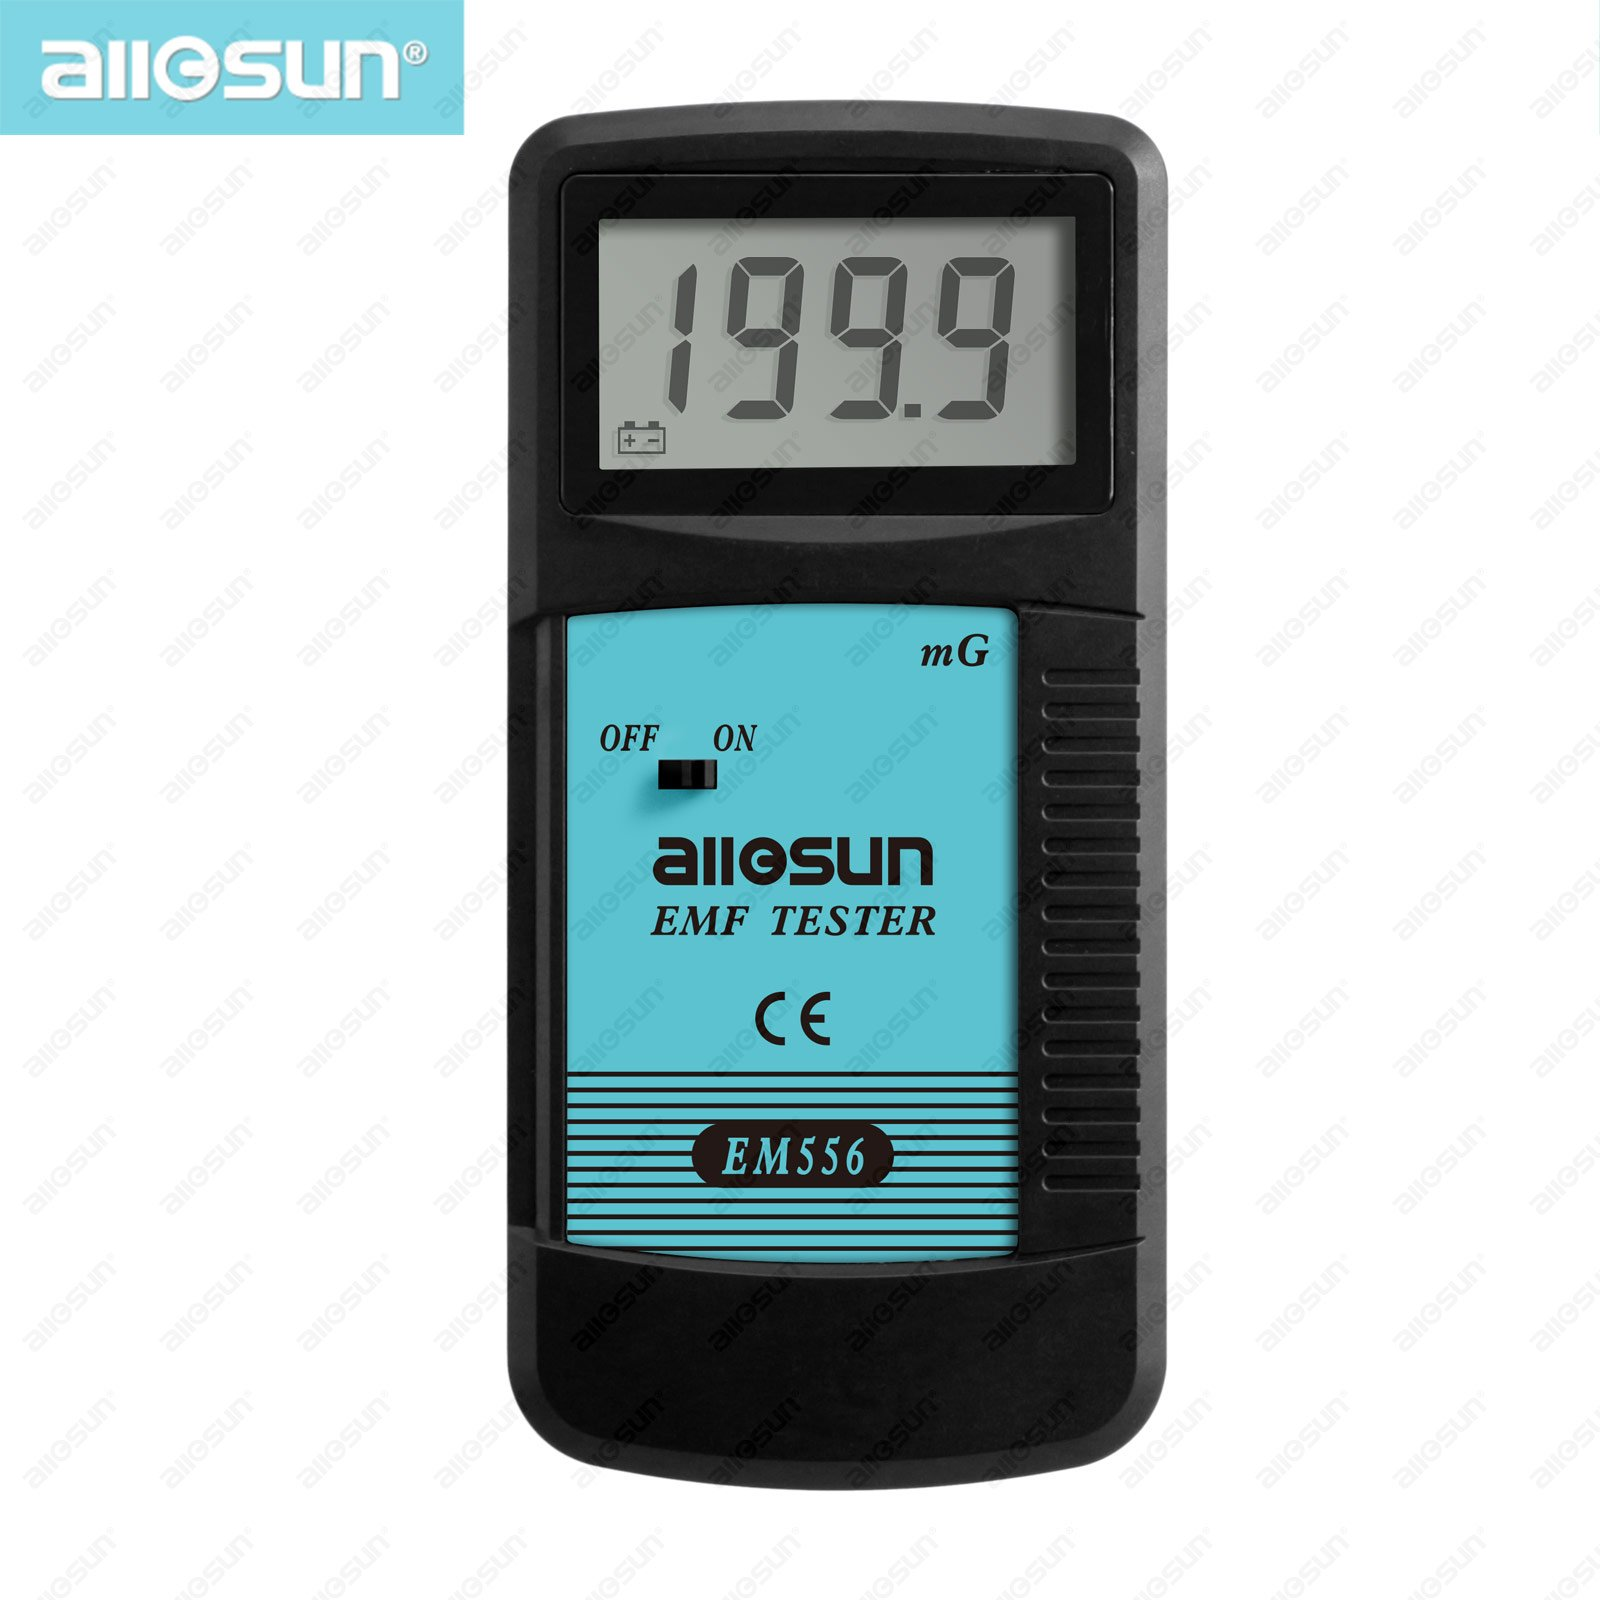 All-sun EM556 High Sensitivity EMF Tester 0.1-199.9mG 30HZ-400HZ Test the Magnitude of E ...